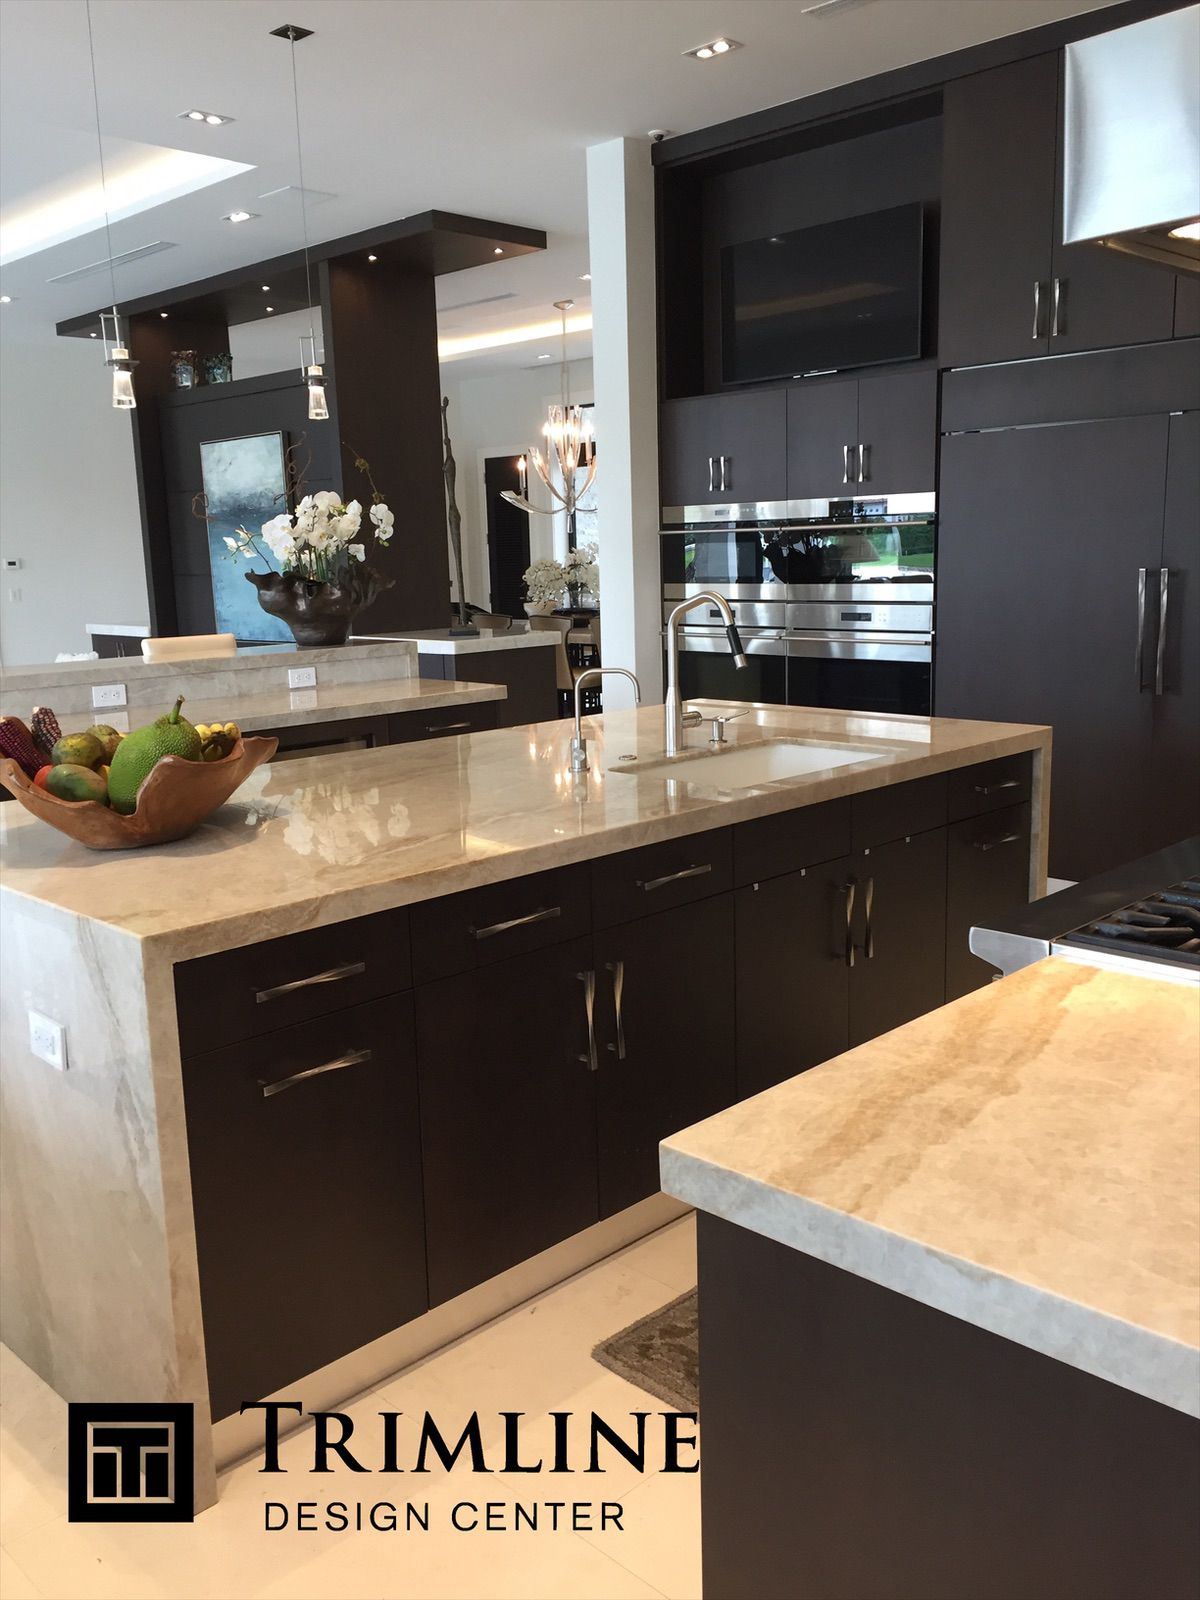 Pin By Trimline Design Center On Contemporary Kitchens Kitchen Design Kitchen Cabinet Design Custom Kitchen Cabinets